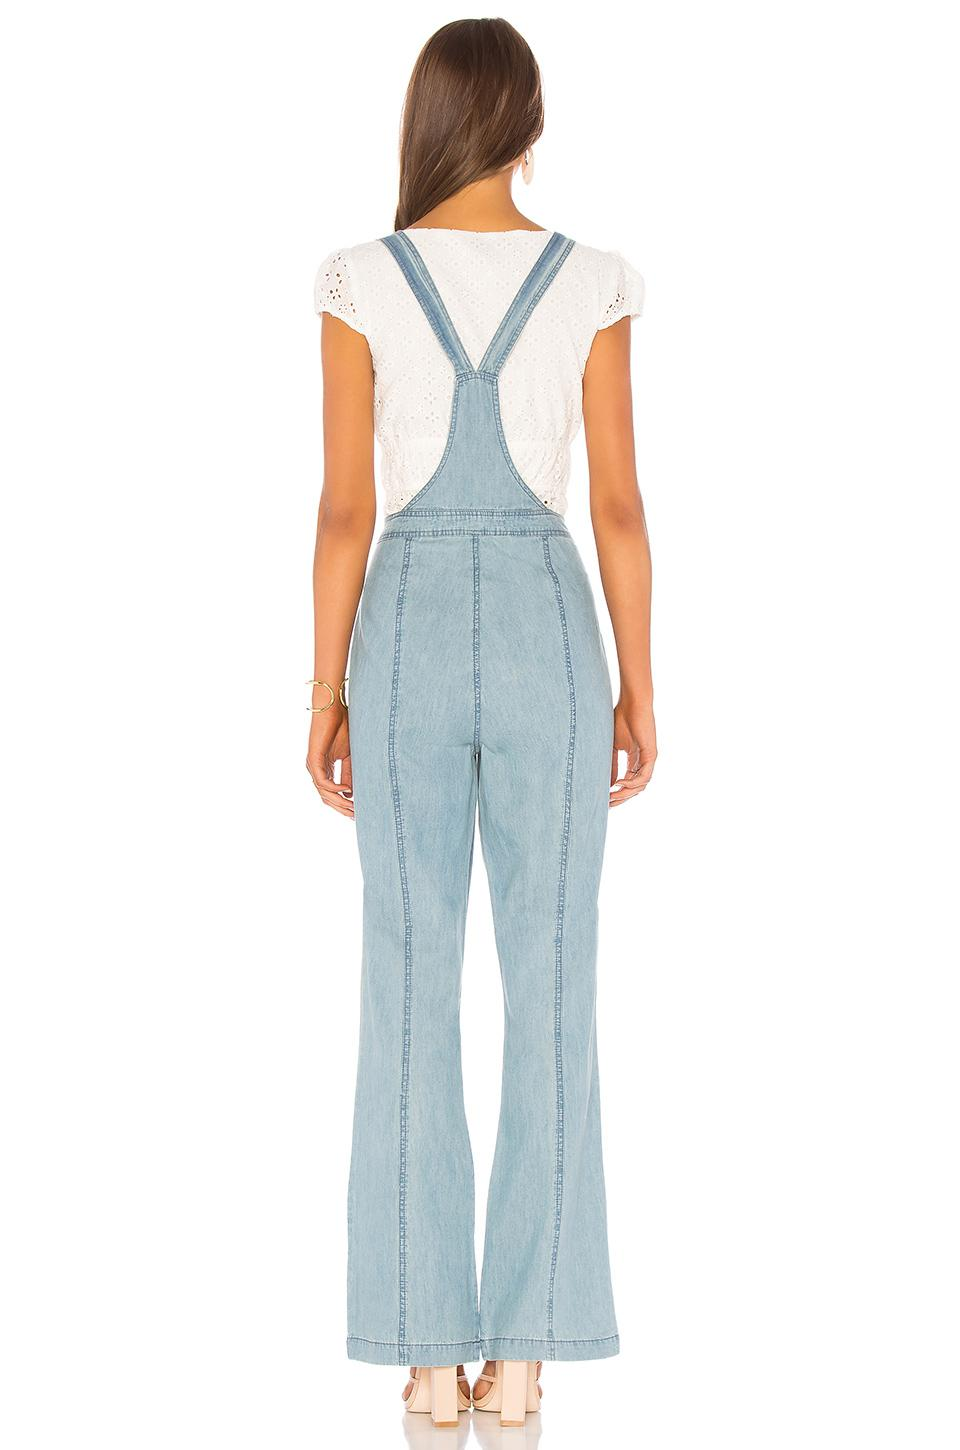 1b0ff727d0b9 Lyst - Cupcakes And Cashmere Meliani Light Wasted Denim Overall in ...